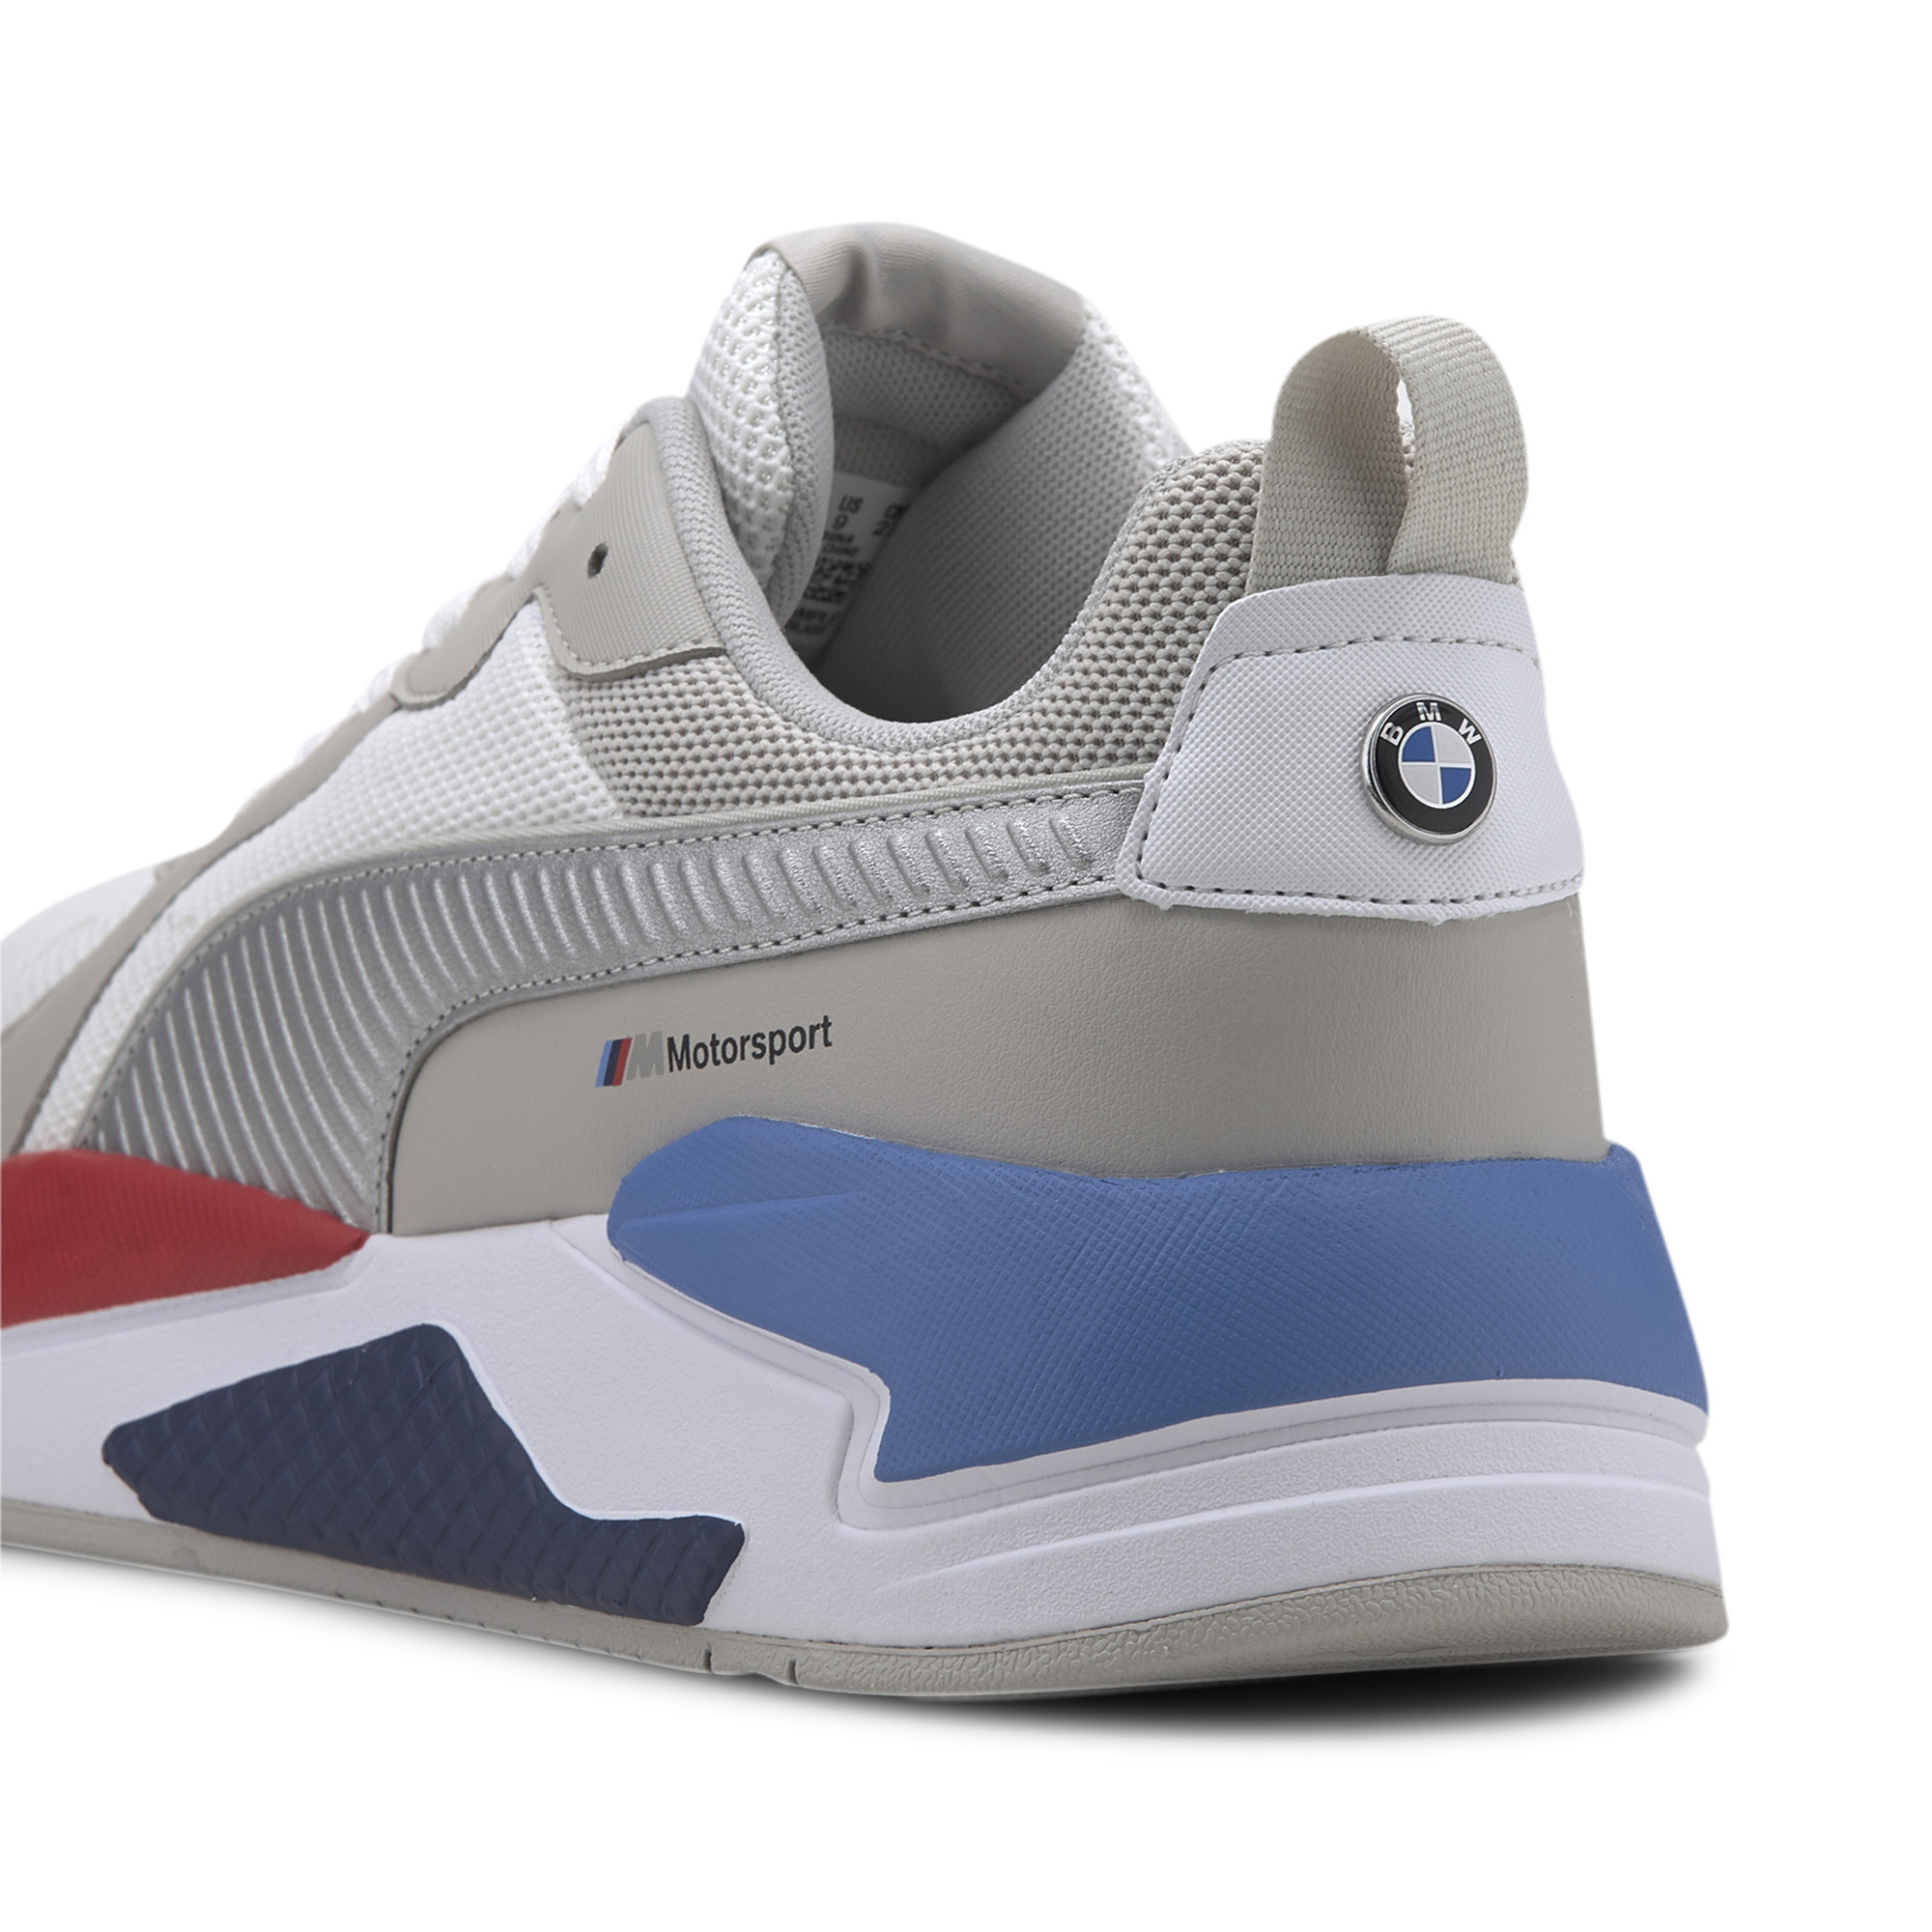 PUMA-Men-039-s-BMW-M-Motorsport-X-RAY-Sneakers thumbnail 17